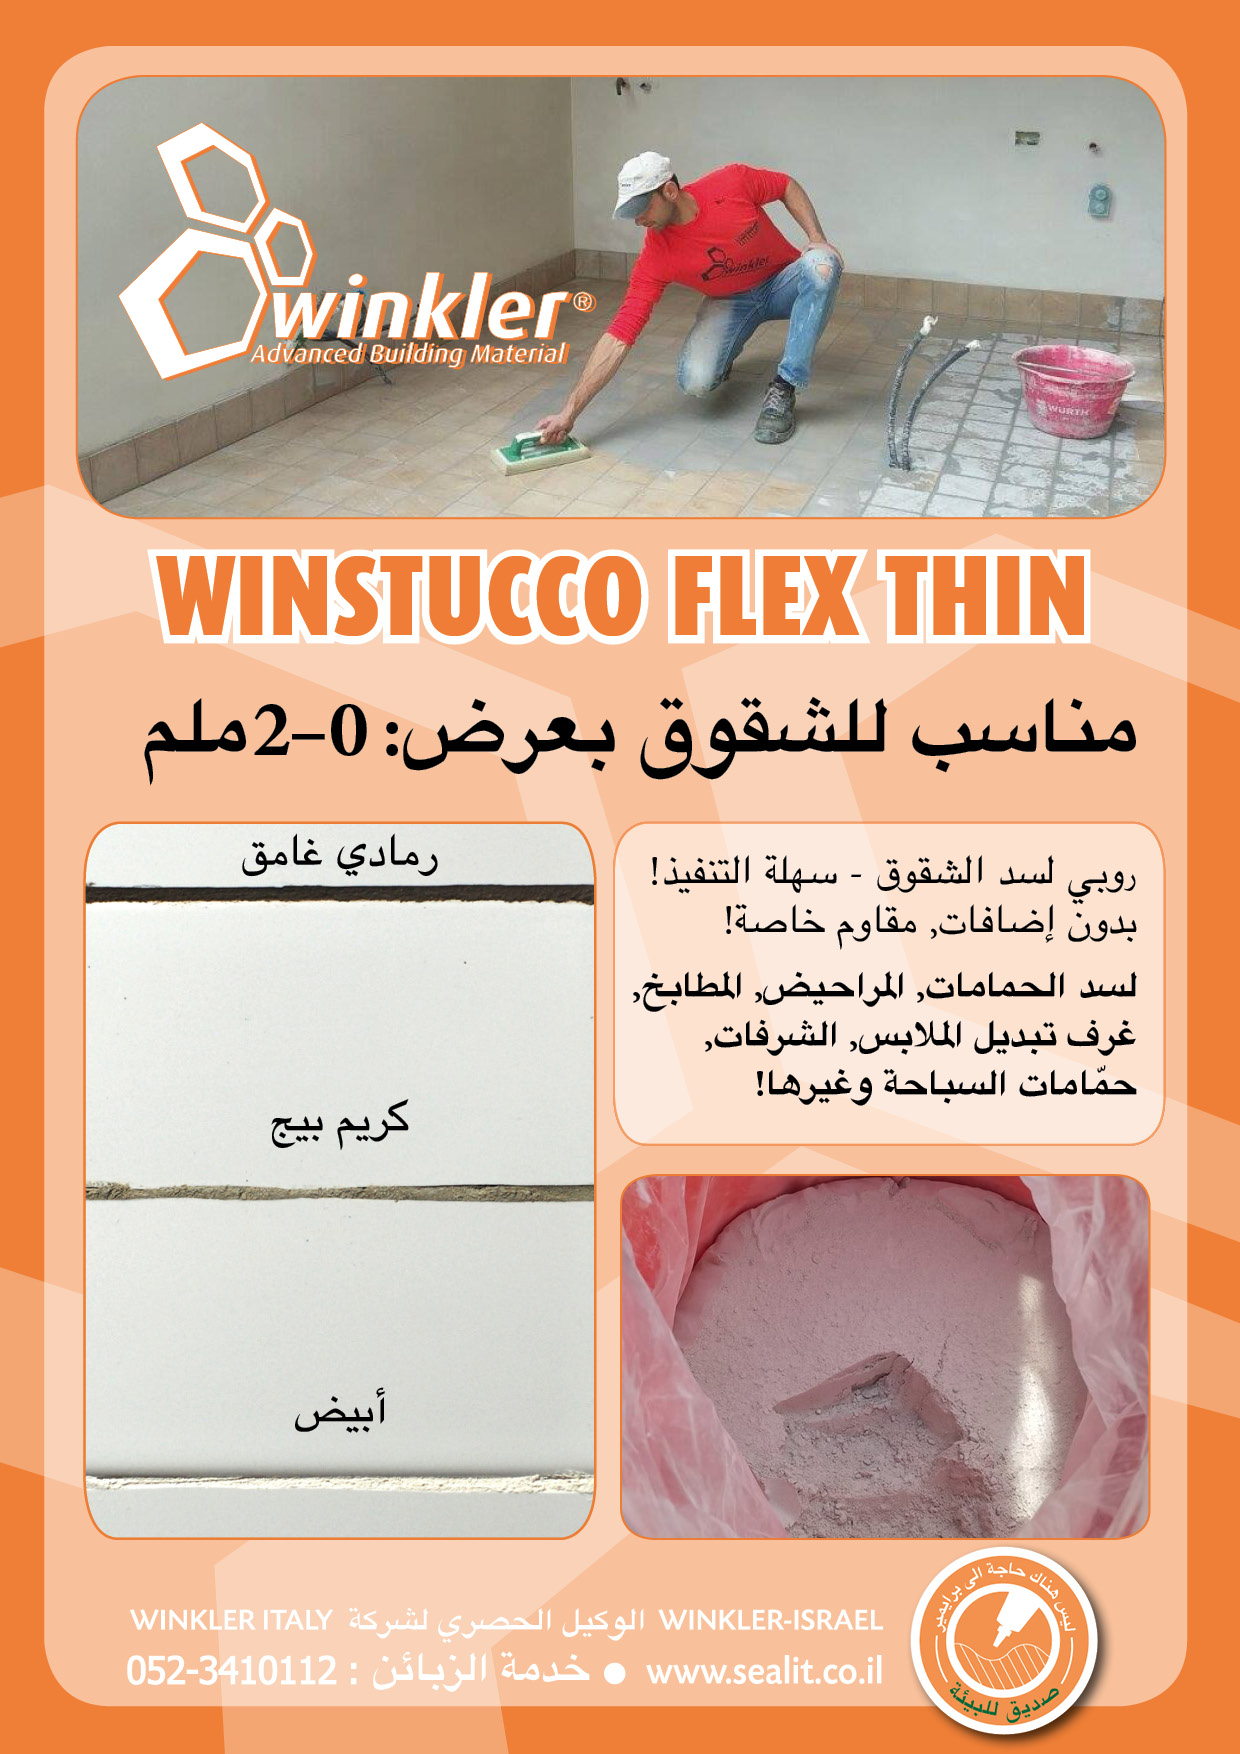 flyer-winstucco flex thin arab